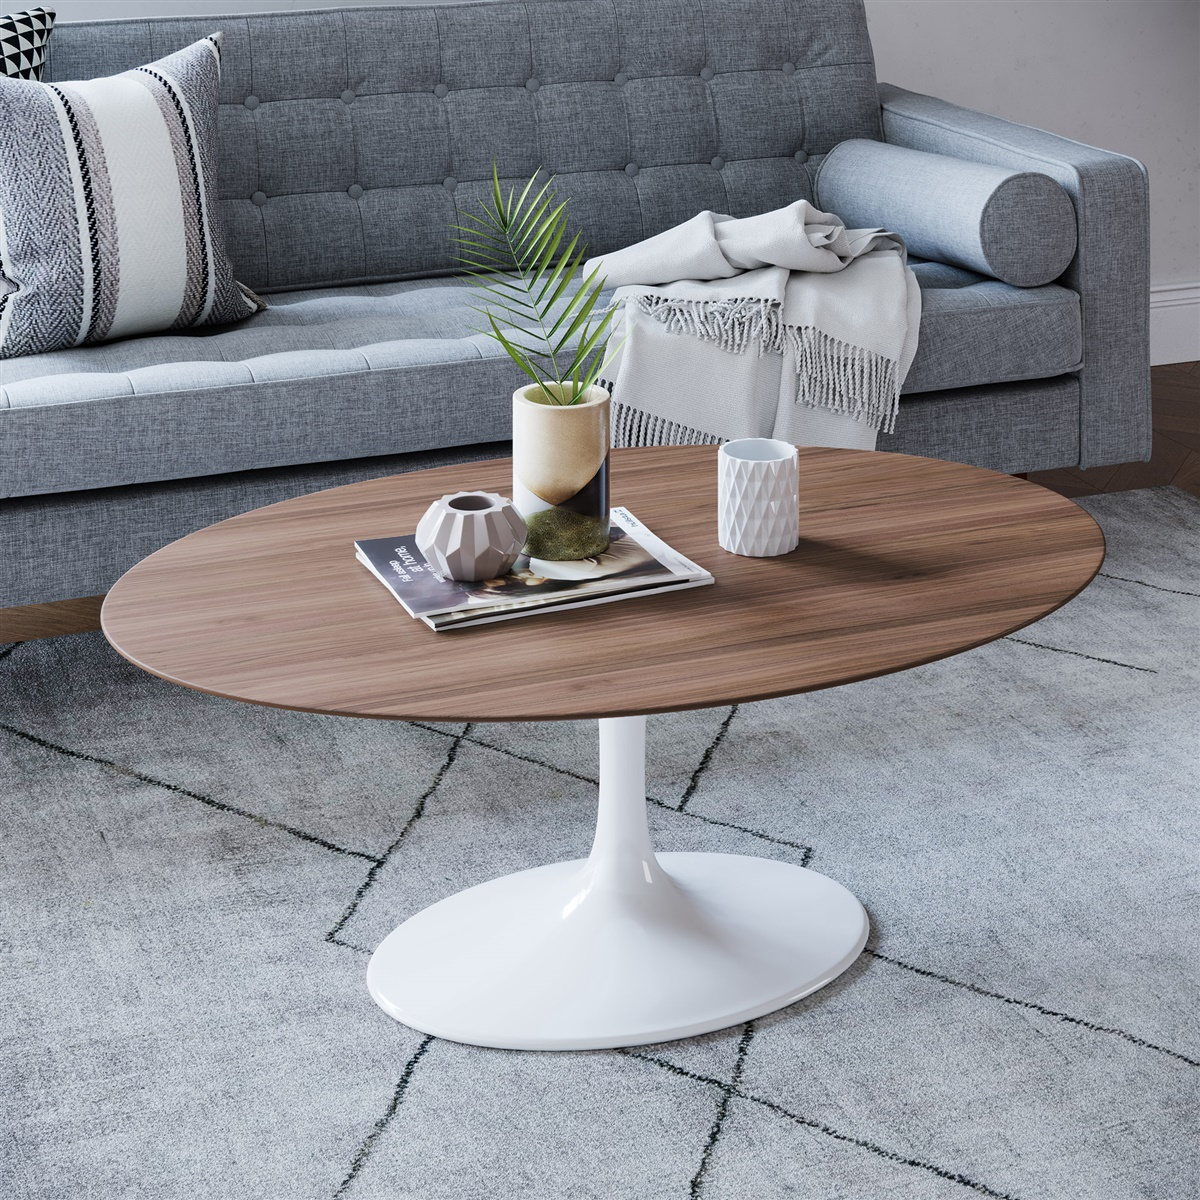 Exquisite Shelf Saarinen Tulip Oval Coffee Table Oval Coffee Table Small Oval Coffee Table houzz-02 Oval Coffee Table